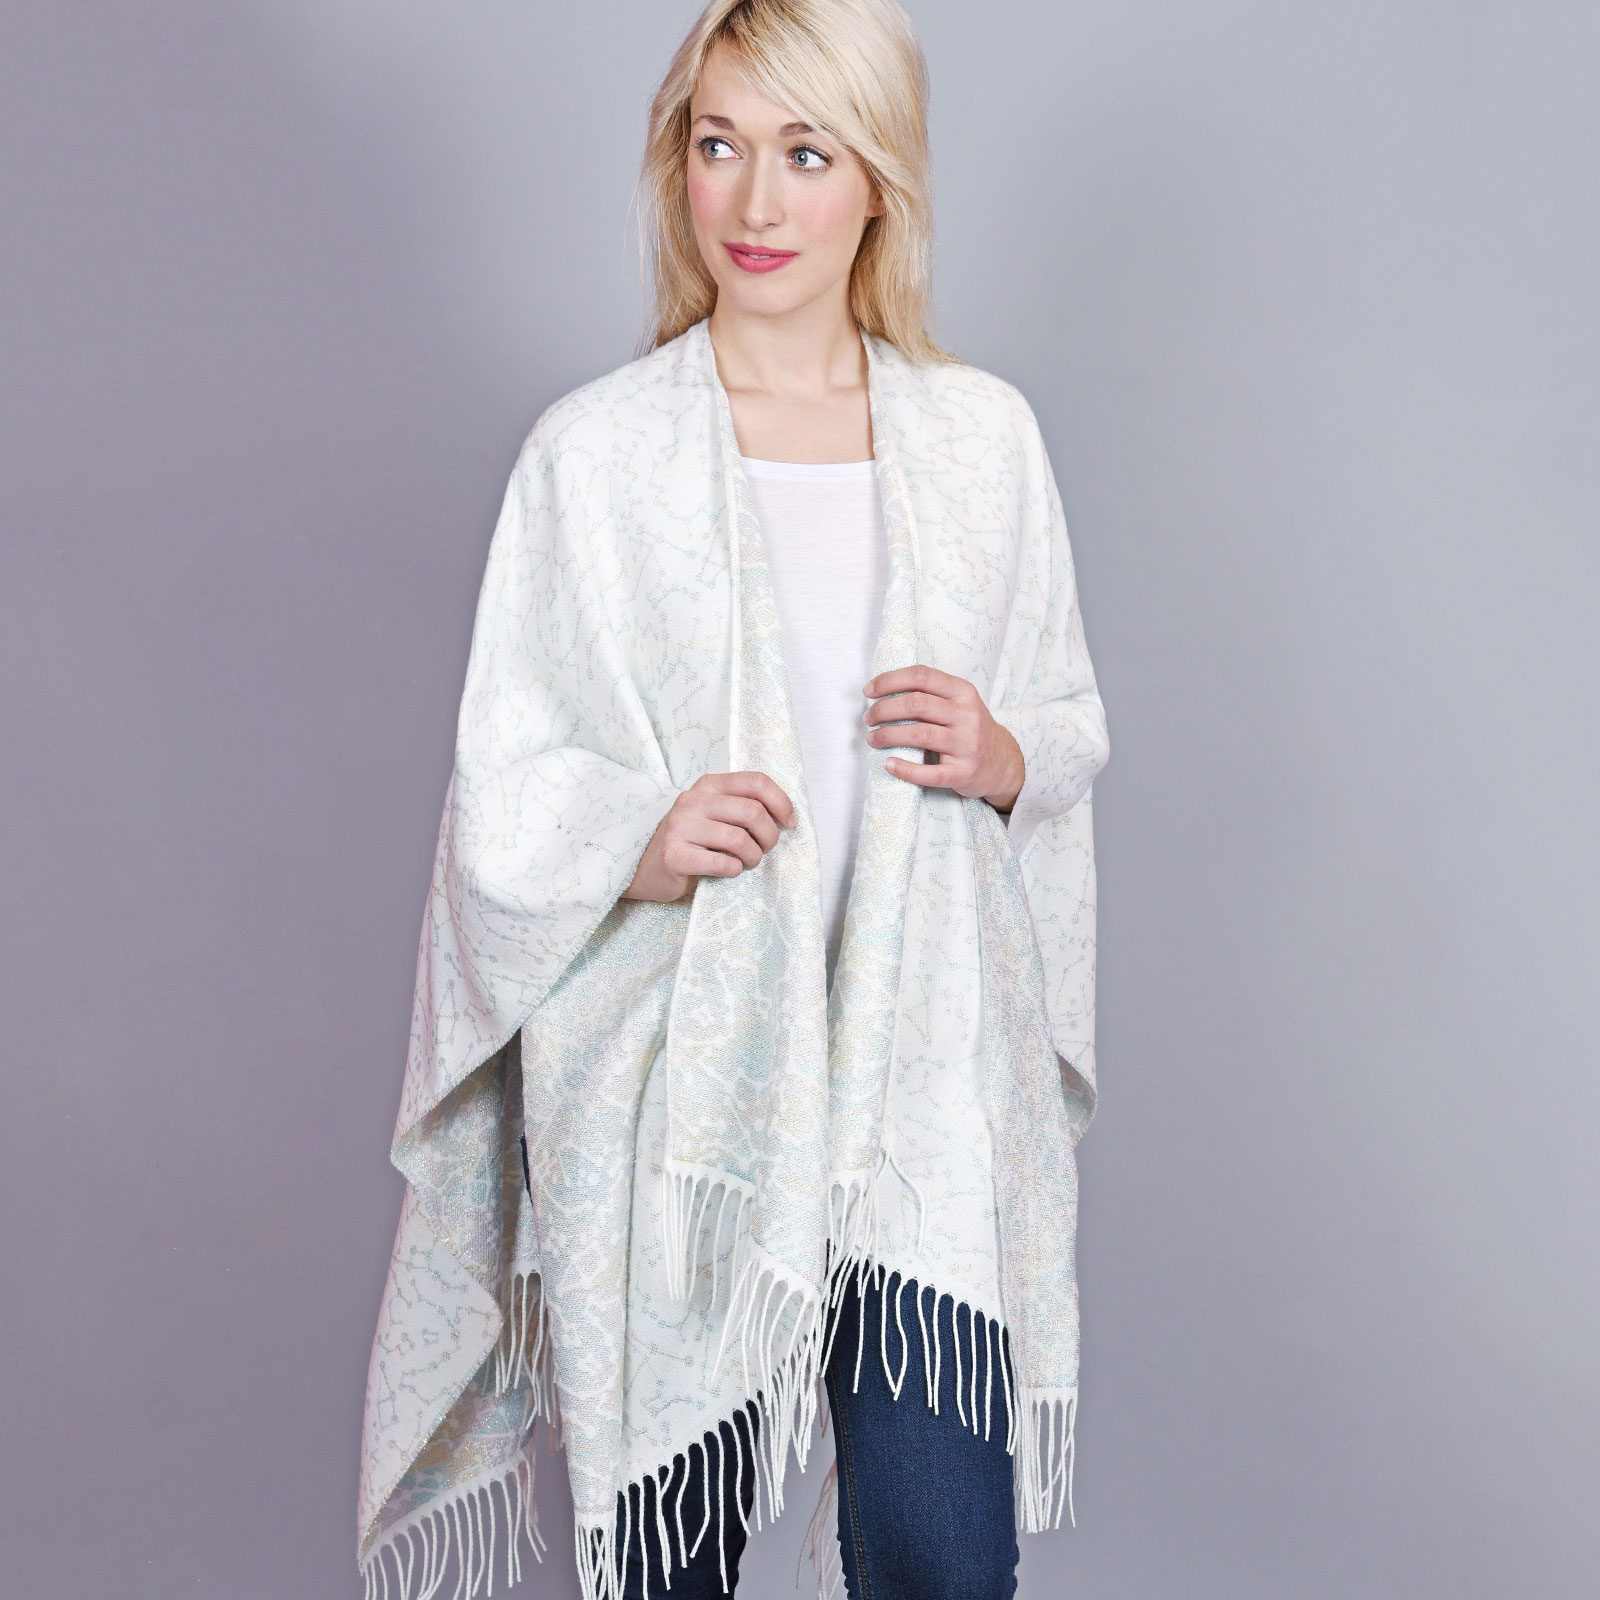 http://lookbook.allee-du-foulard.fr/wp-content/uploads/2018/11/AT-04448-VF16-1-poncho-femme-blanc-motifs-relief-1600x1600.jpg